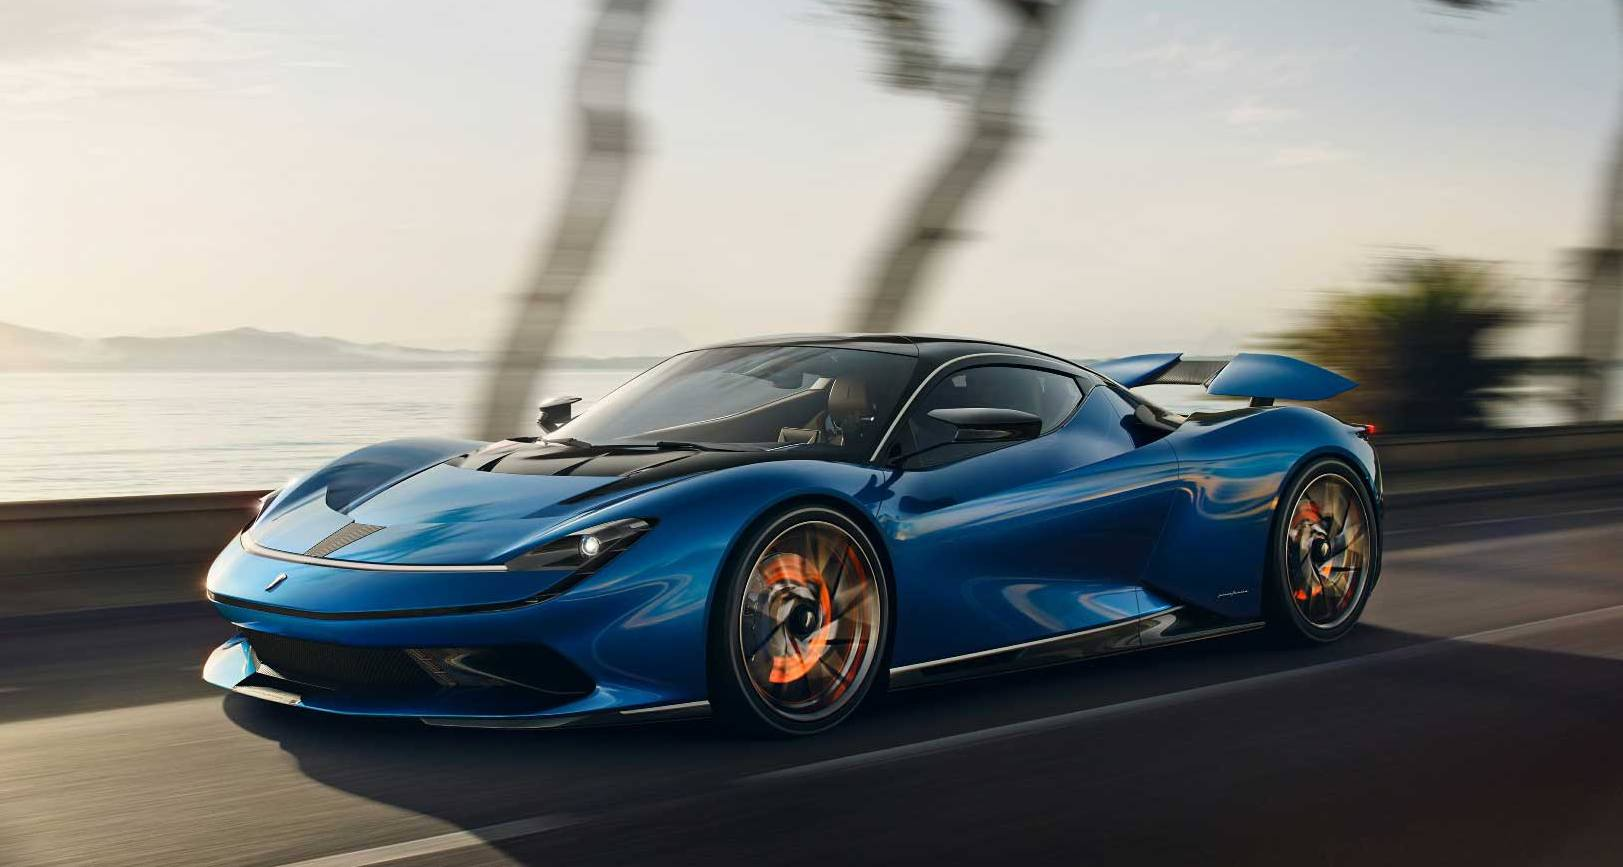 Five lessons I learned from driving a supercar for the first time